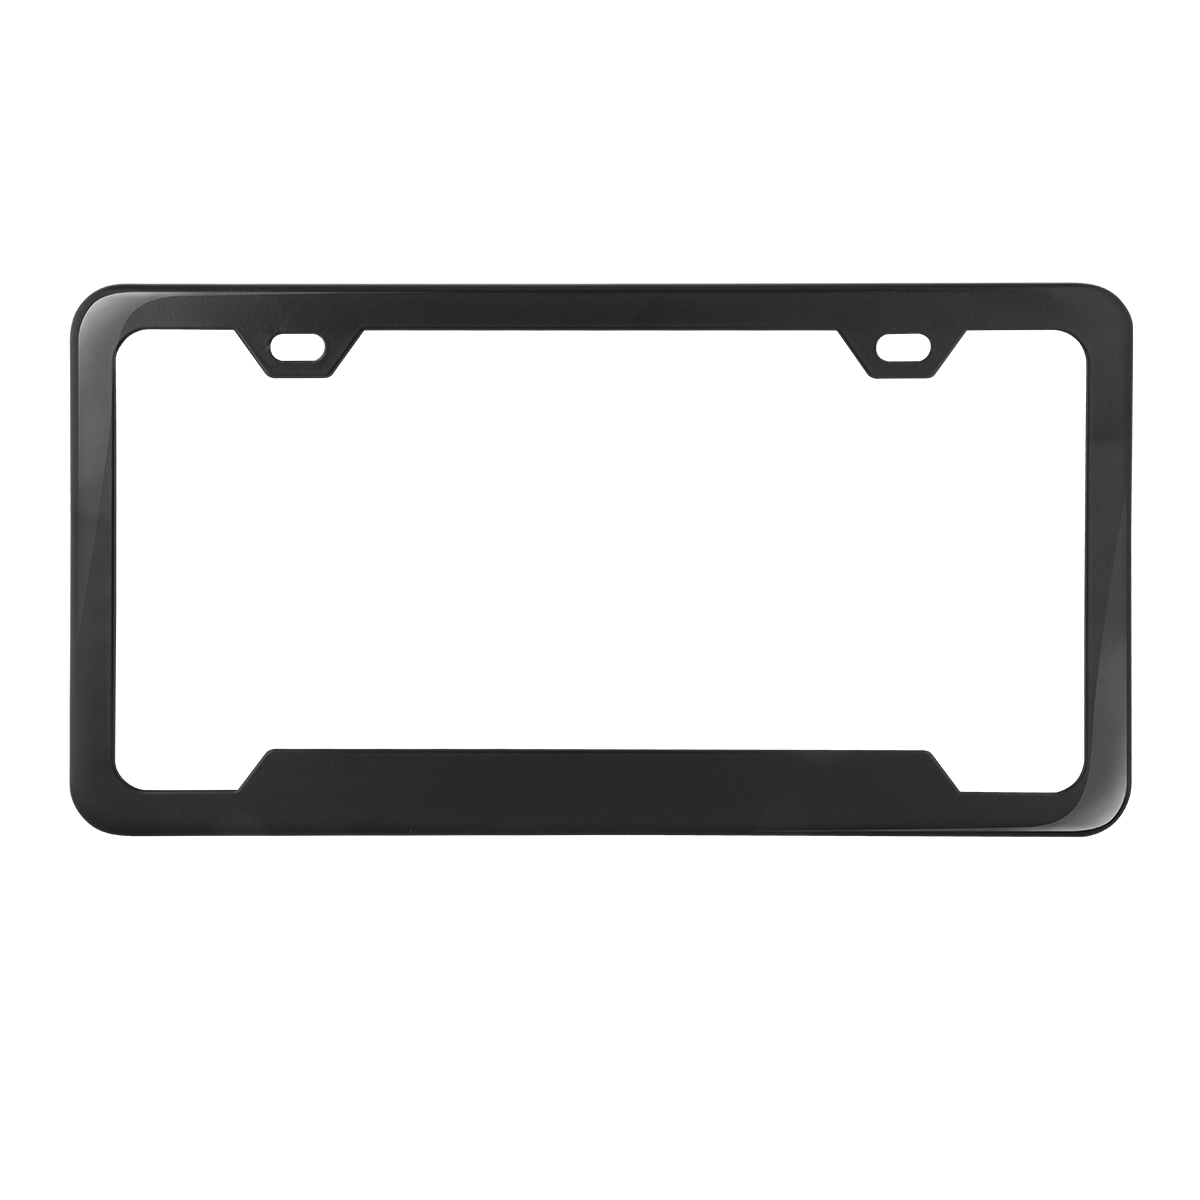 60411 Plain 2-Hole License Plate Frames with Center Raised